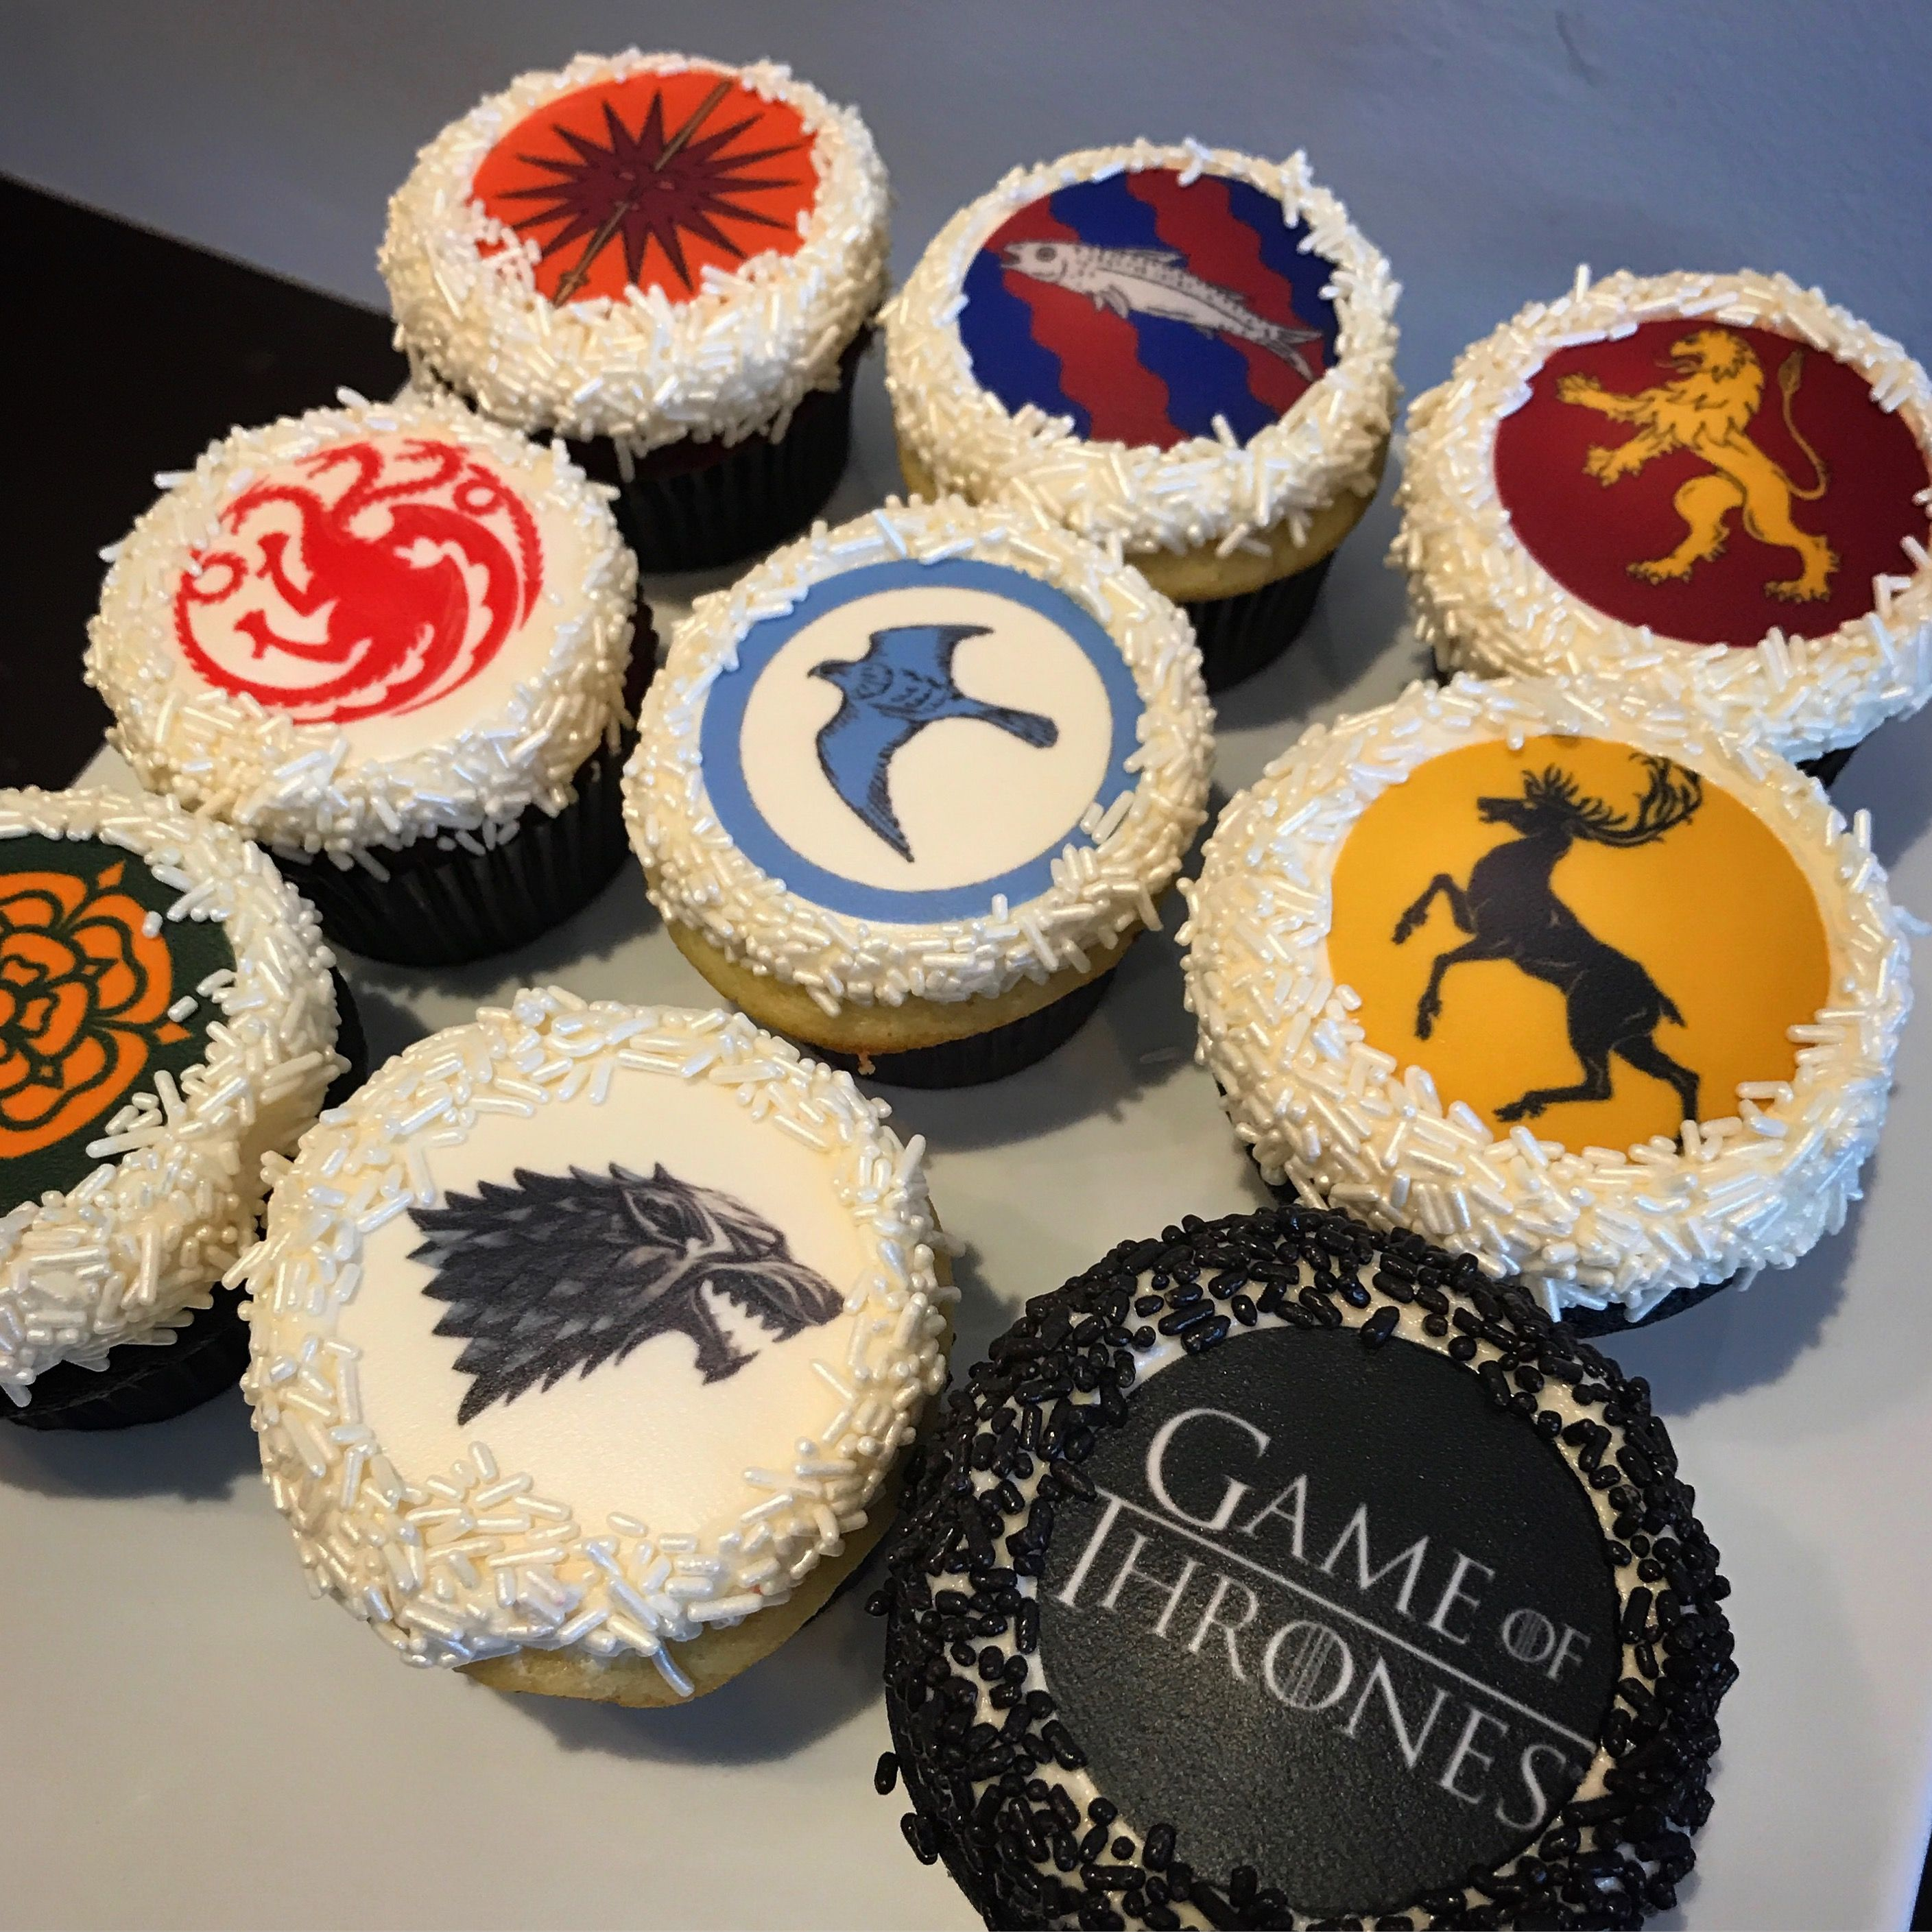 Game Of Thrones Season 7 Cupcakes Game Of Thrones Cake Game Of